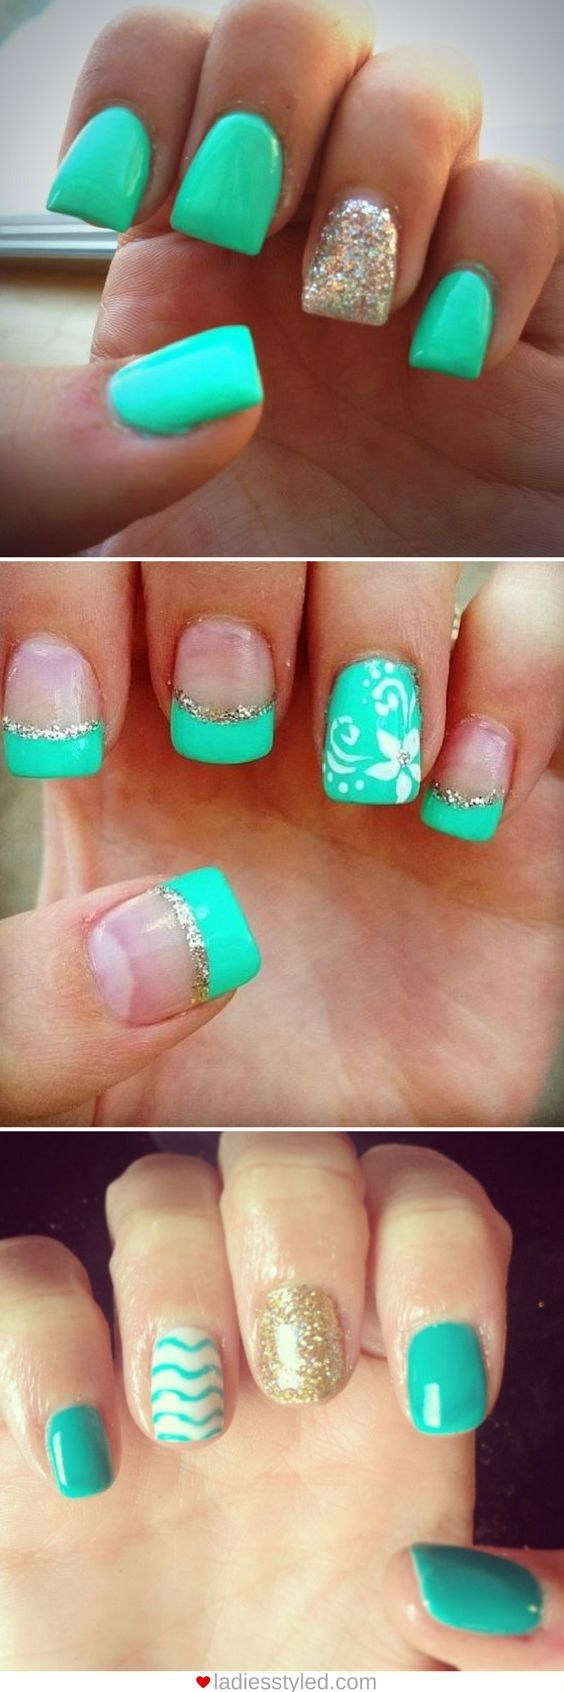 Best 25+ Nail ideas ideas on Pinterest